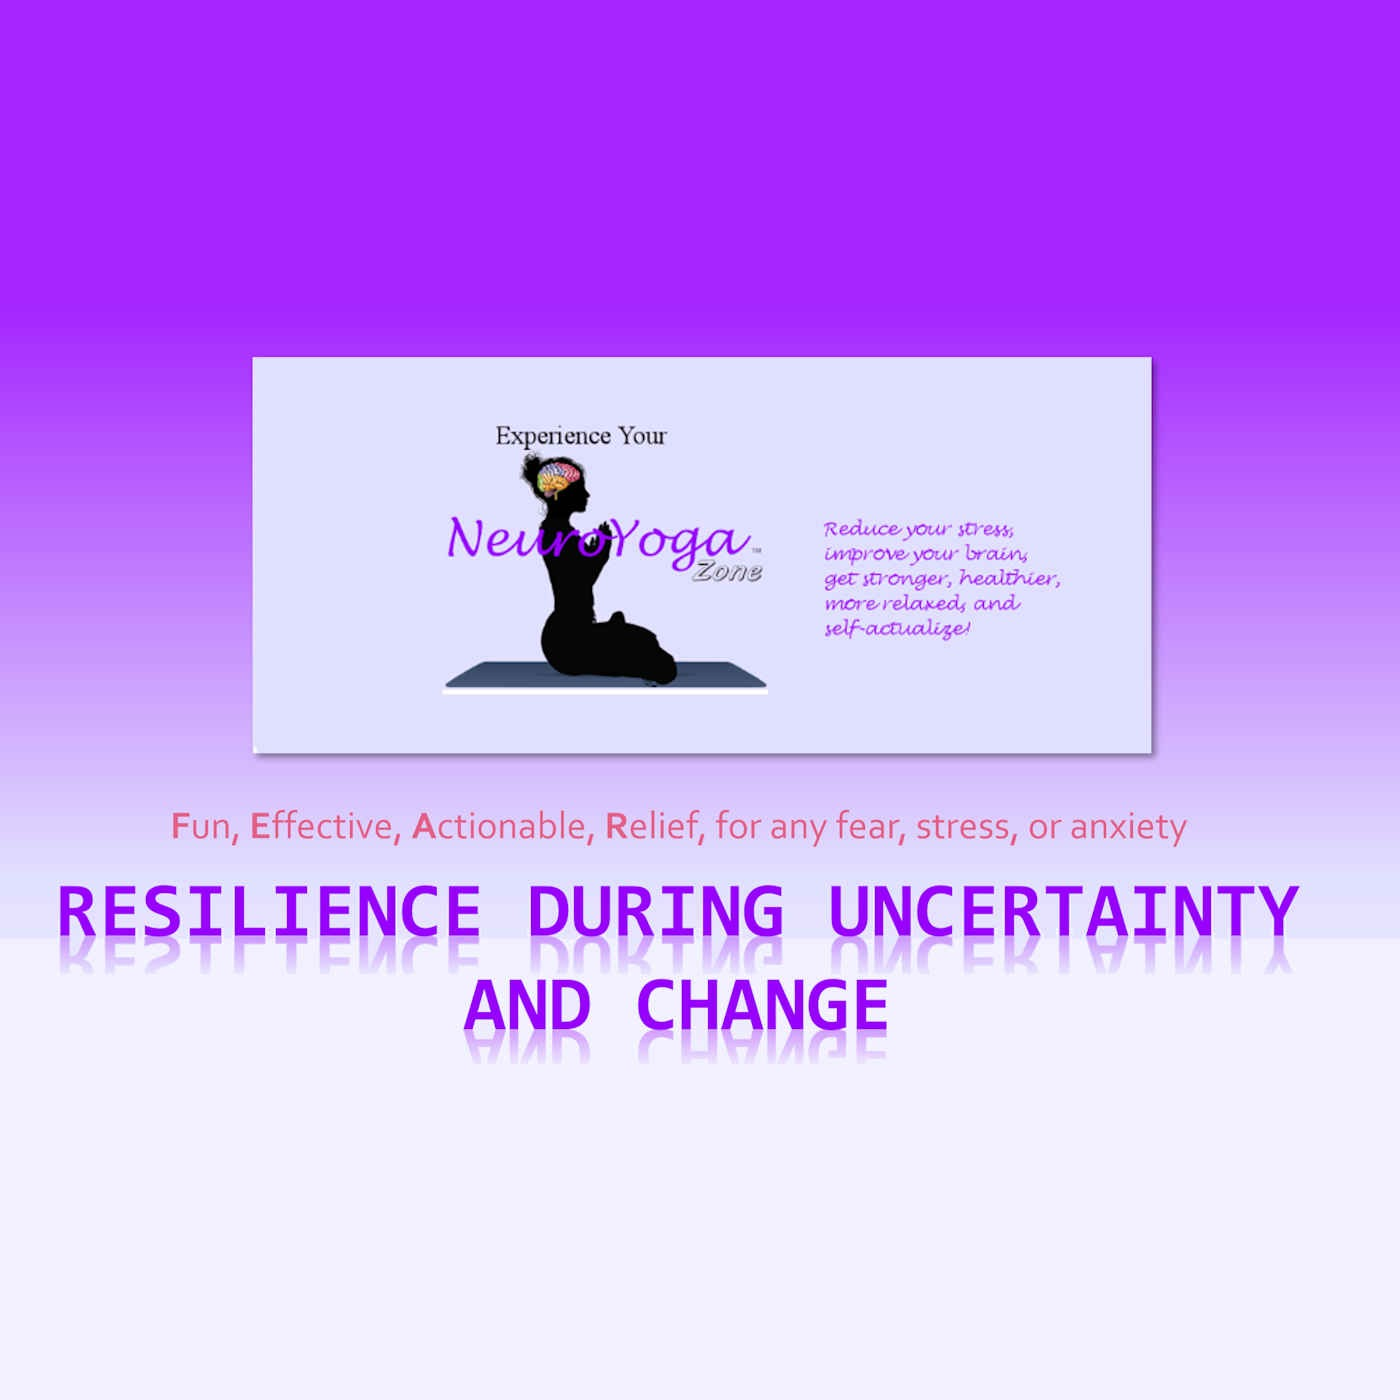 Resilience During Uncertainty and Change